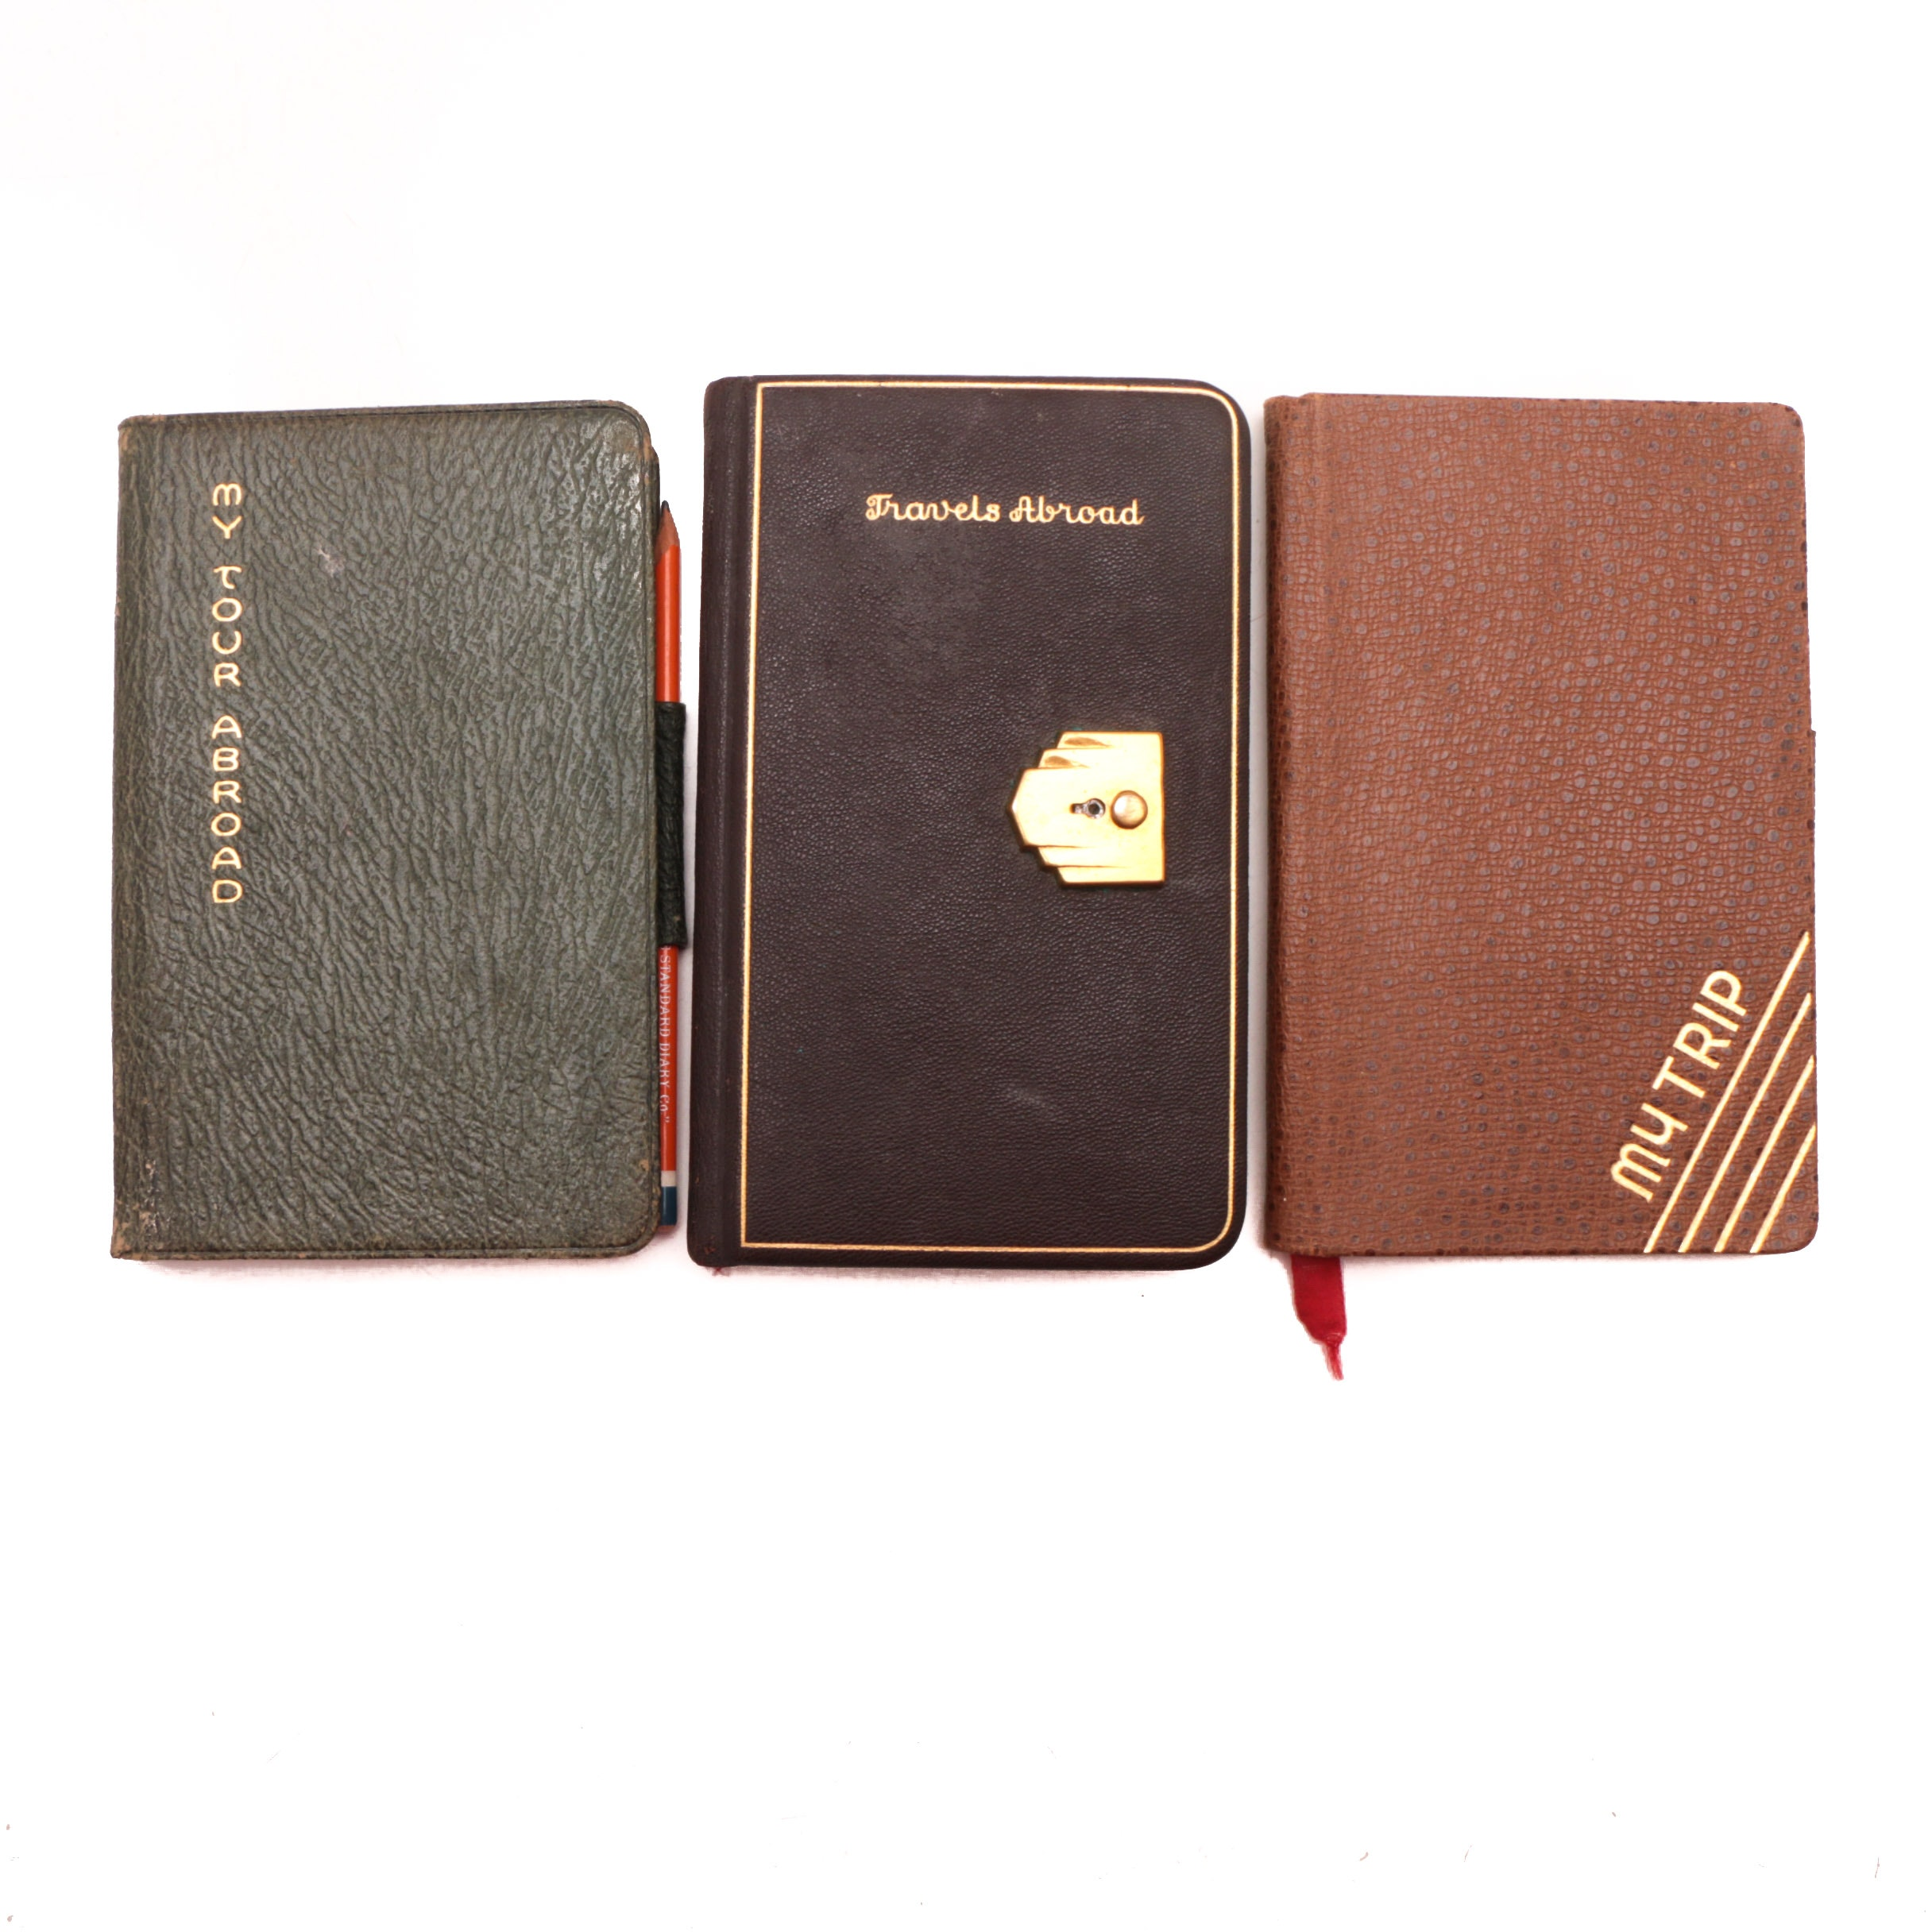 Three 1930s-1940s Vintage Travel Diaries